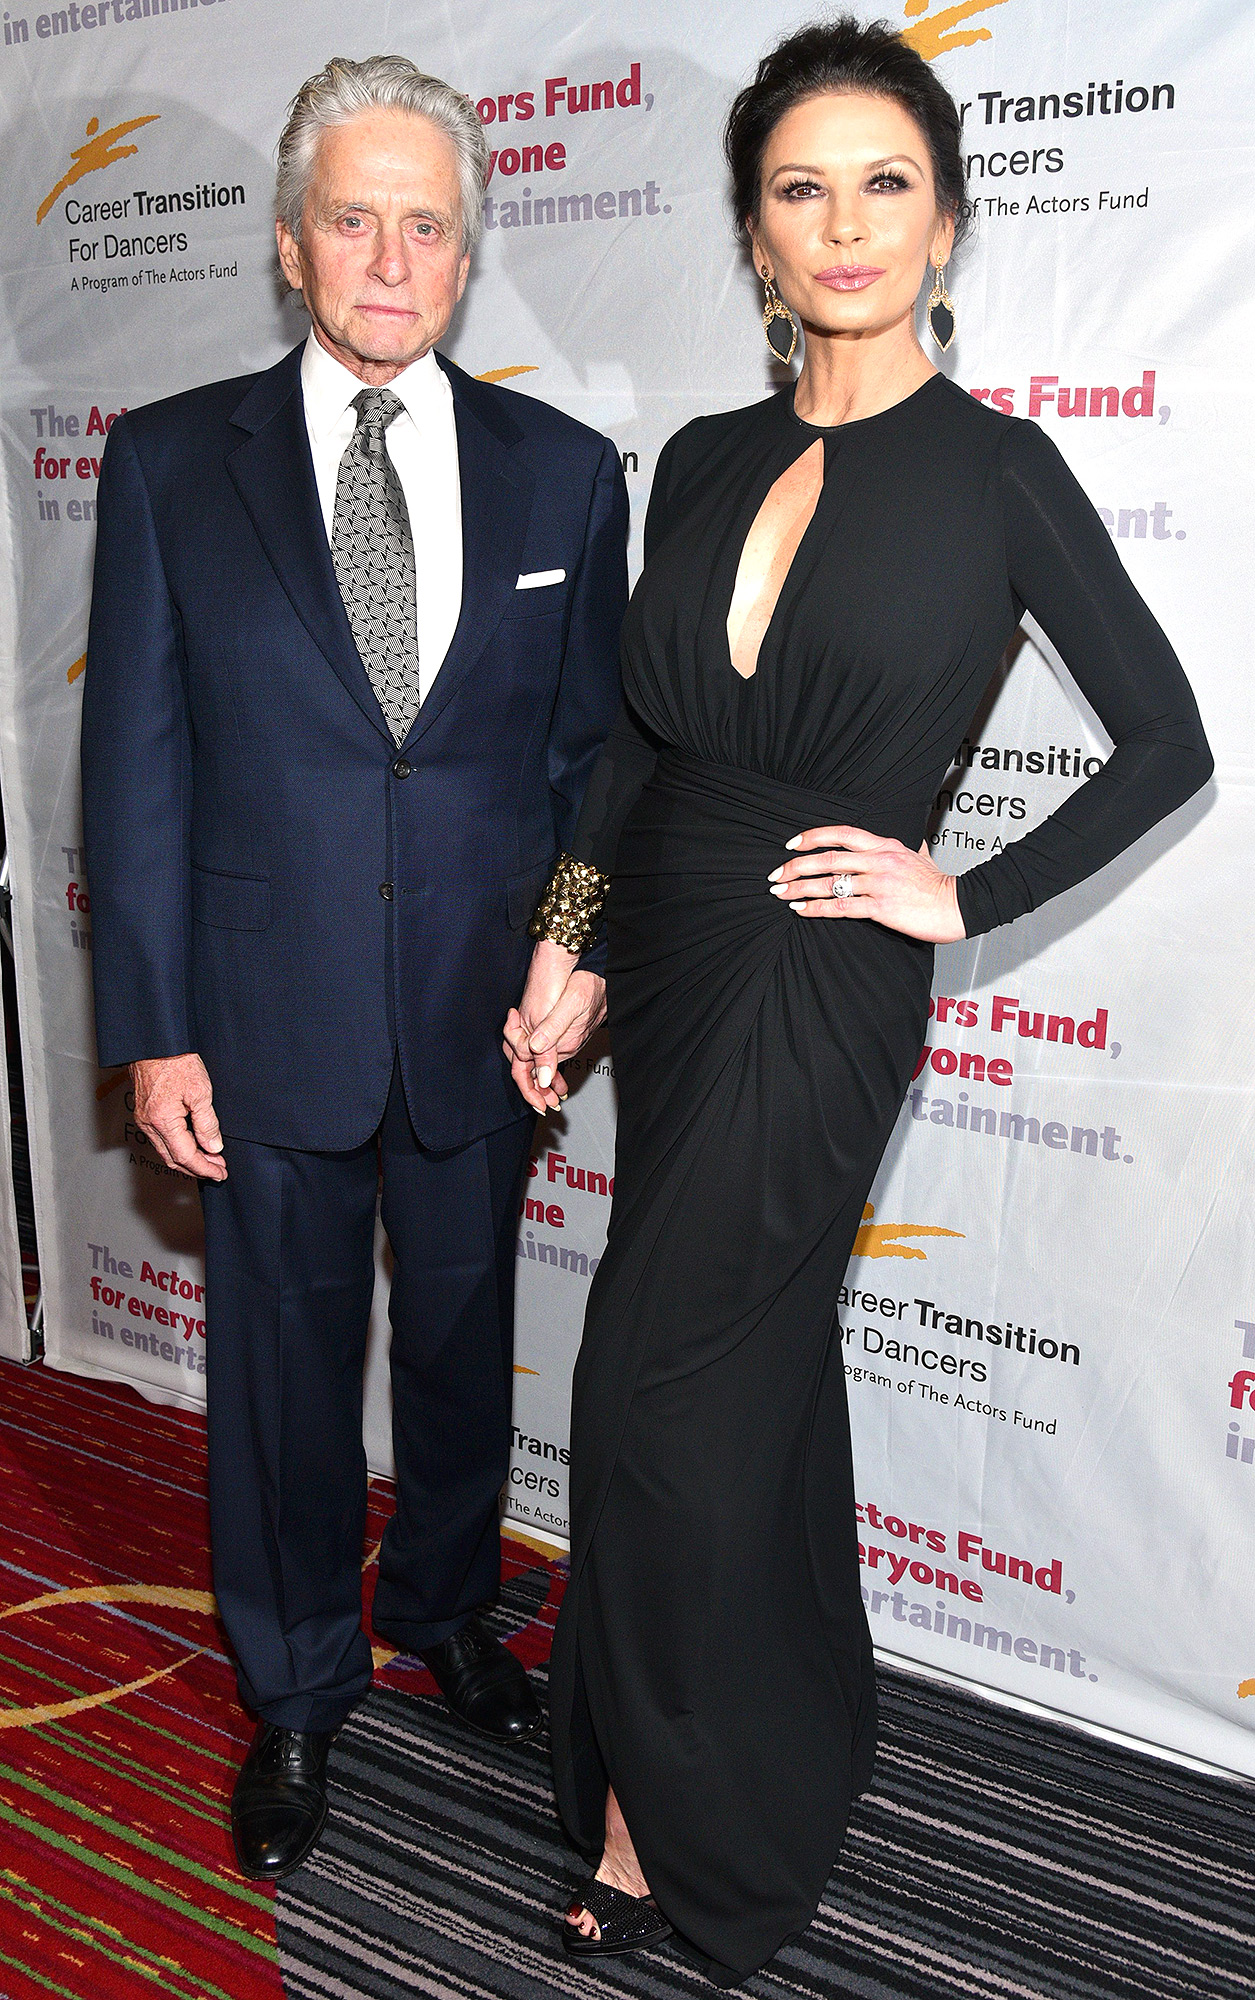 Actors Fund Career Transition for Dancers Jubilee Gala, New York, USA - 01 Nov 2017